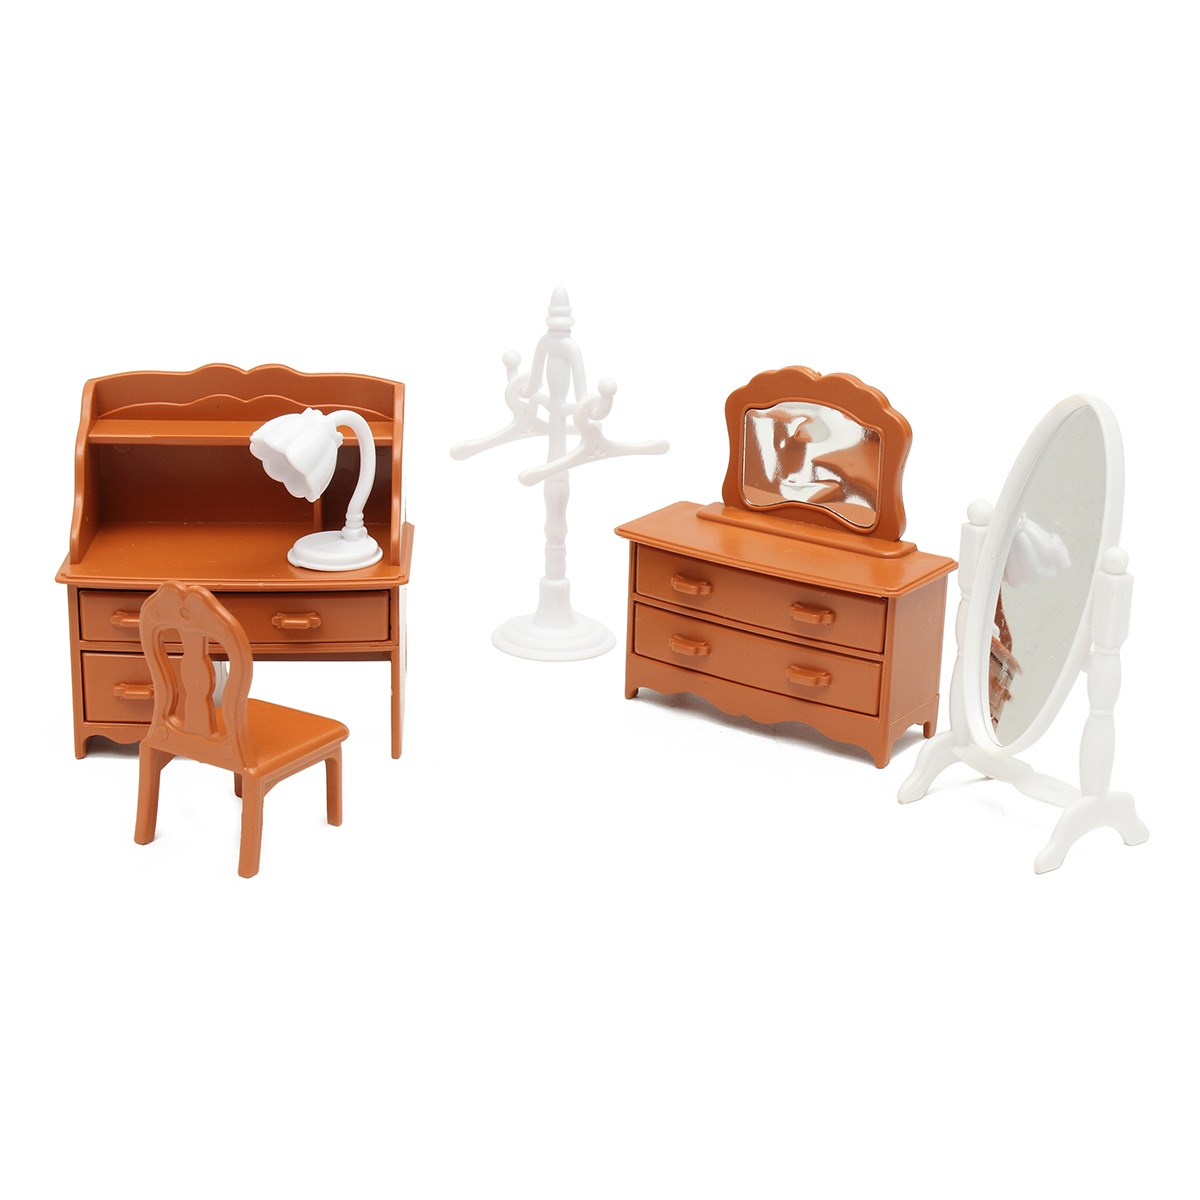 Miniature-Living-Room-Dressing-Table-Furniture-Sets-For-Mini-Children-DollHouse-Home-Decor-Kids-Toy-Doll-House-Toys-Gift-1